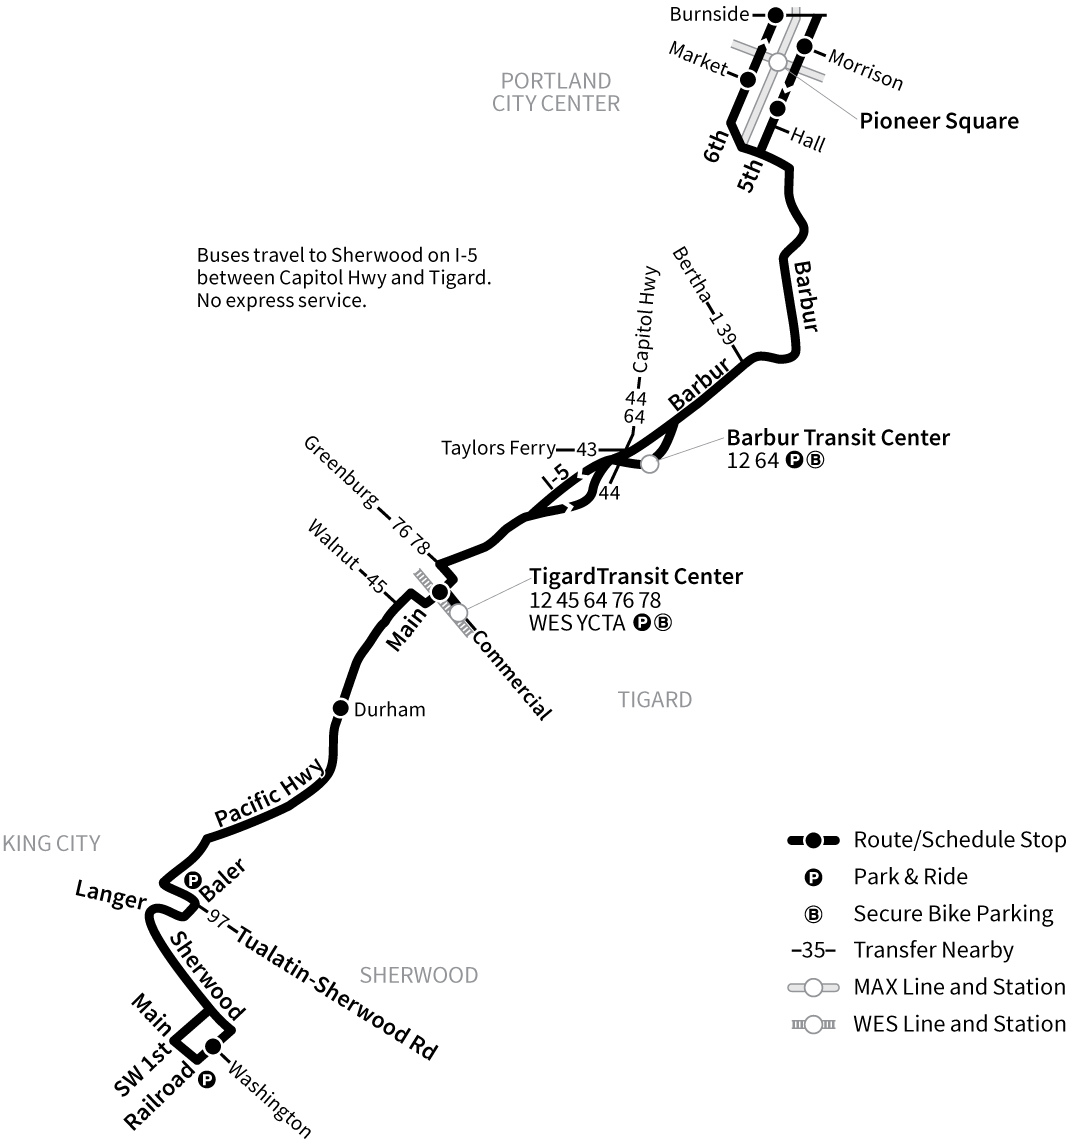 Bus Line 94 route map